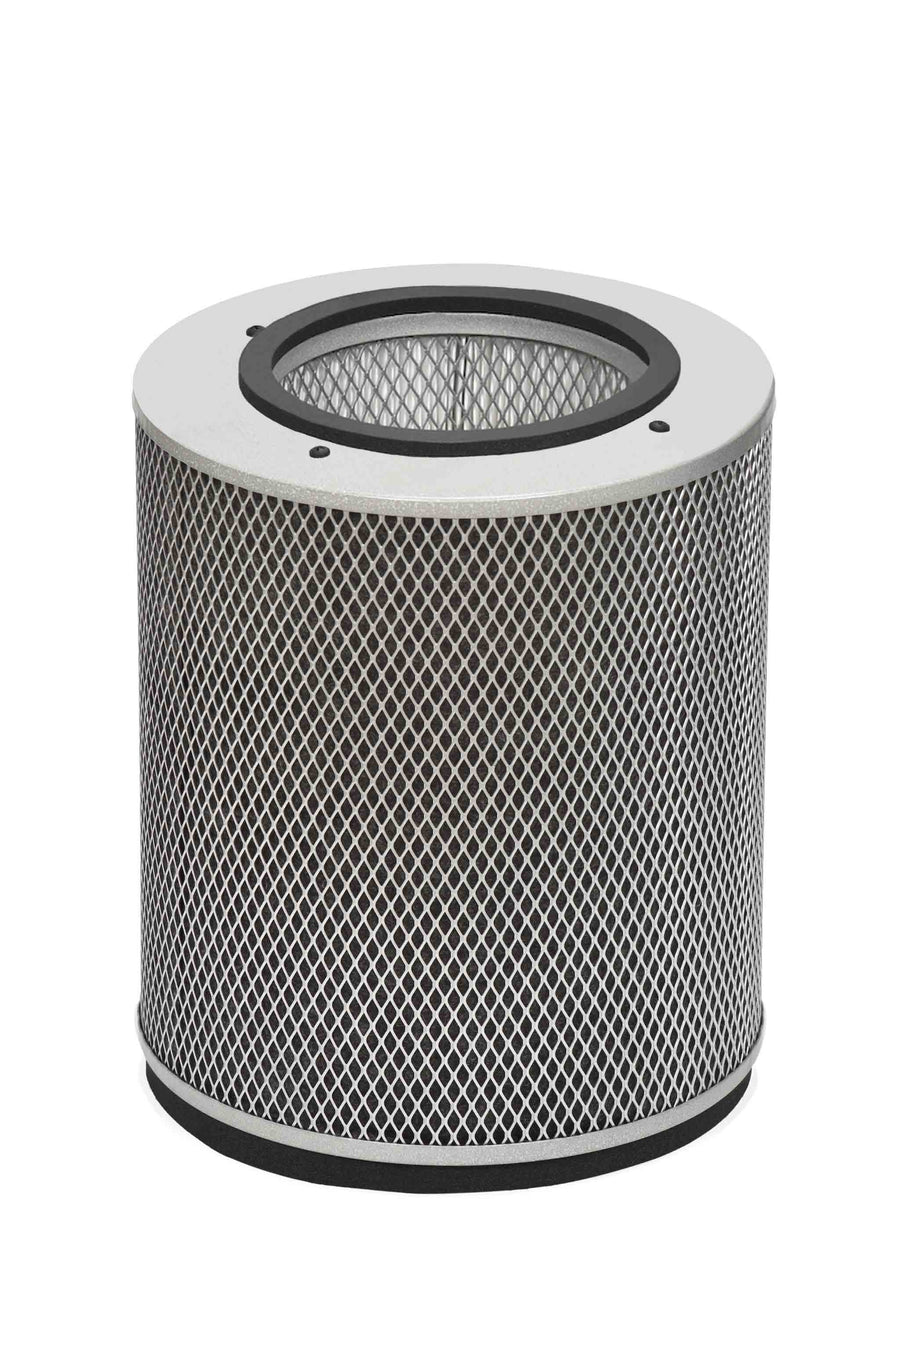 OPEN BOX - Austin Air HealthMate Junior HM200 Replacement Filter